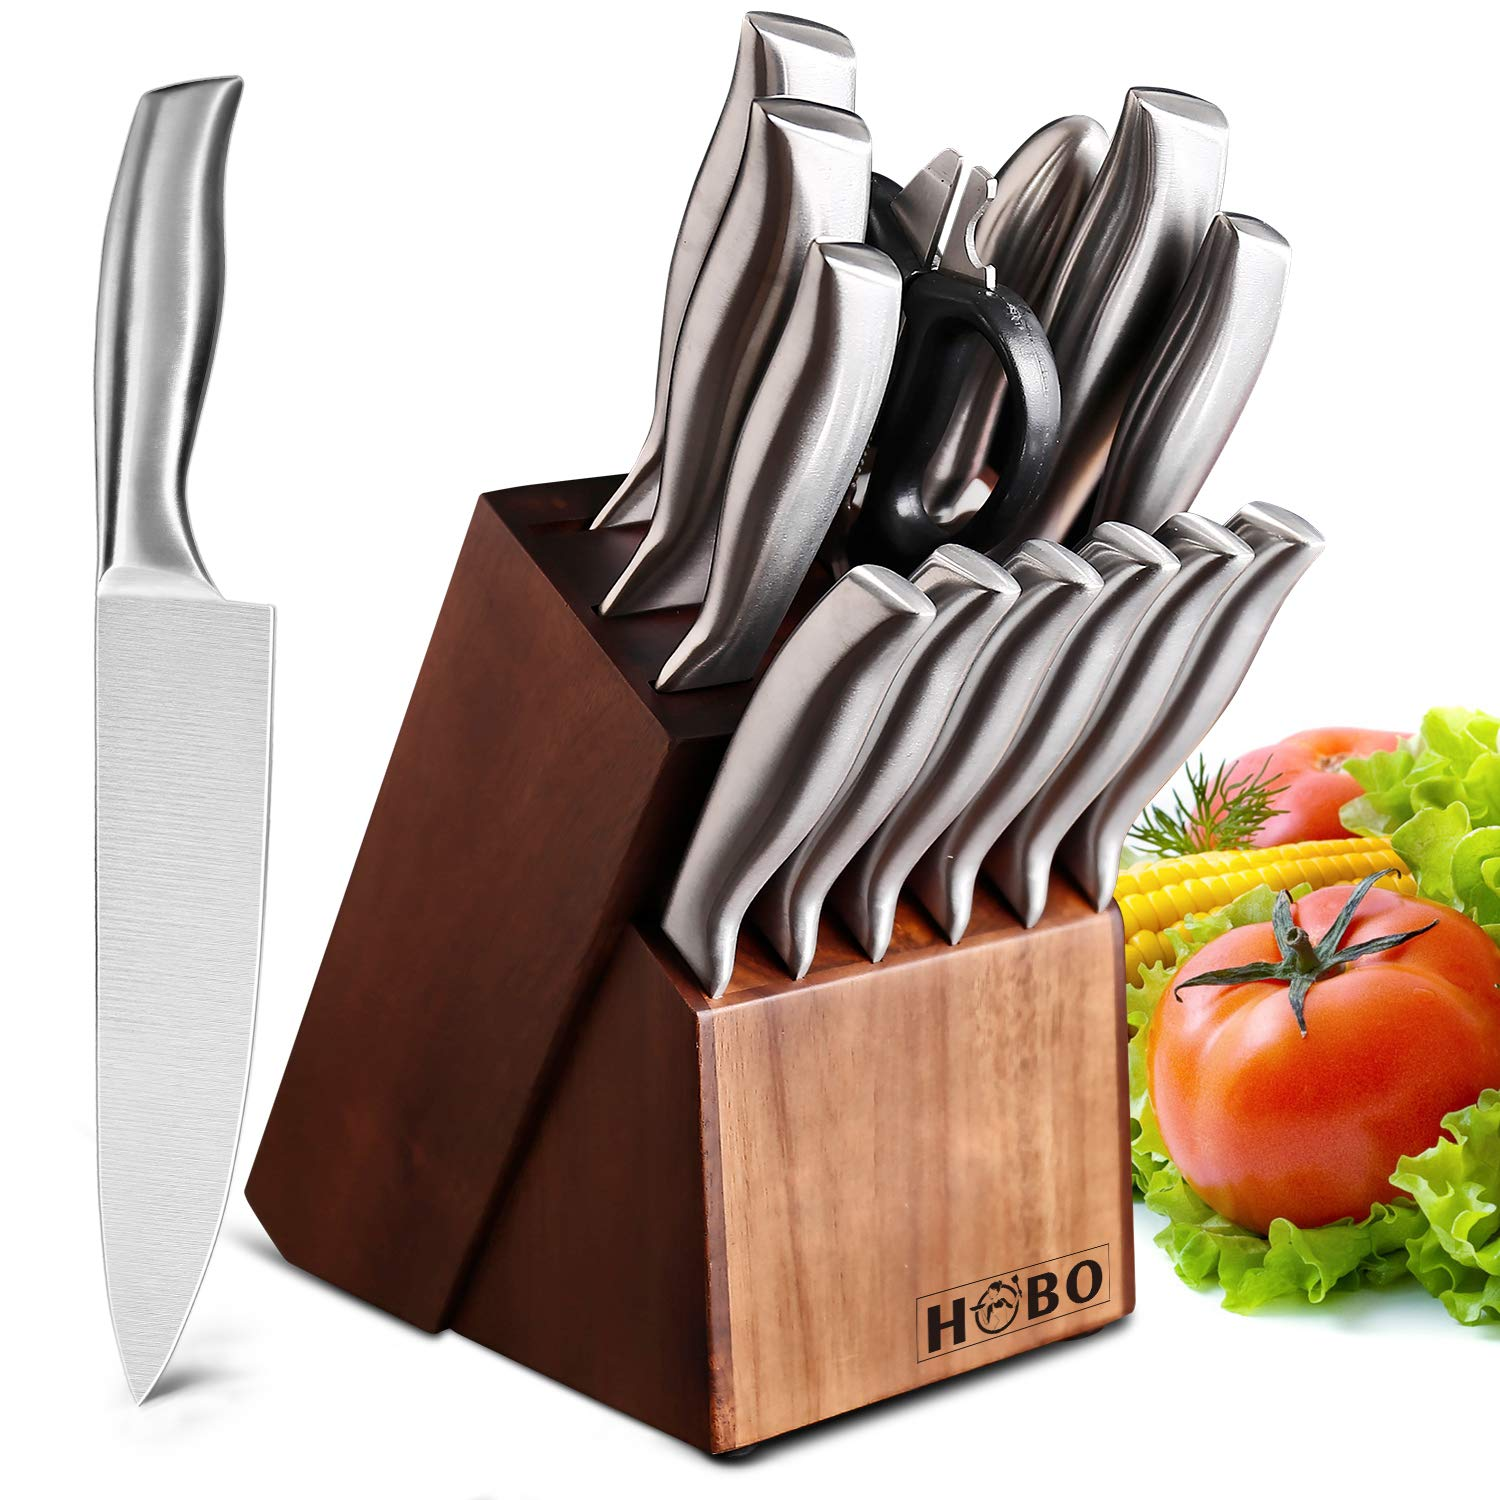 HOBO Knife Set, 14-Piece German Professional Chef Knife Set with Wooden Block, Premium Anti-rust Cutlery Set with Kitchen Scissors and Sharpener